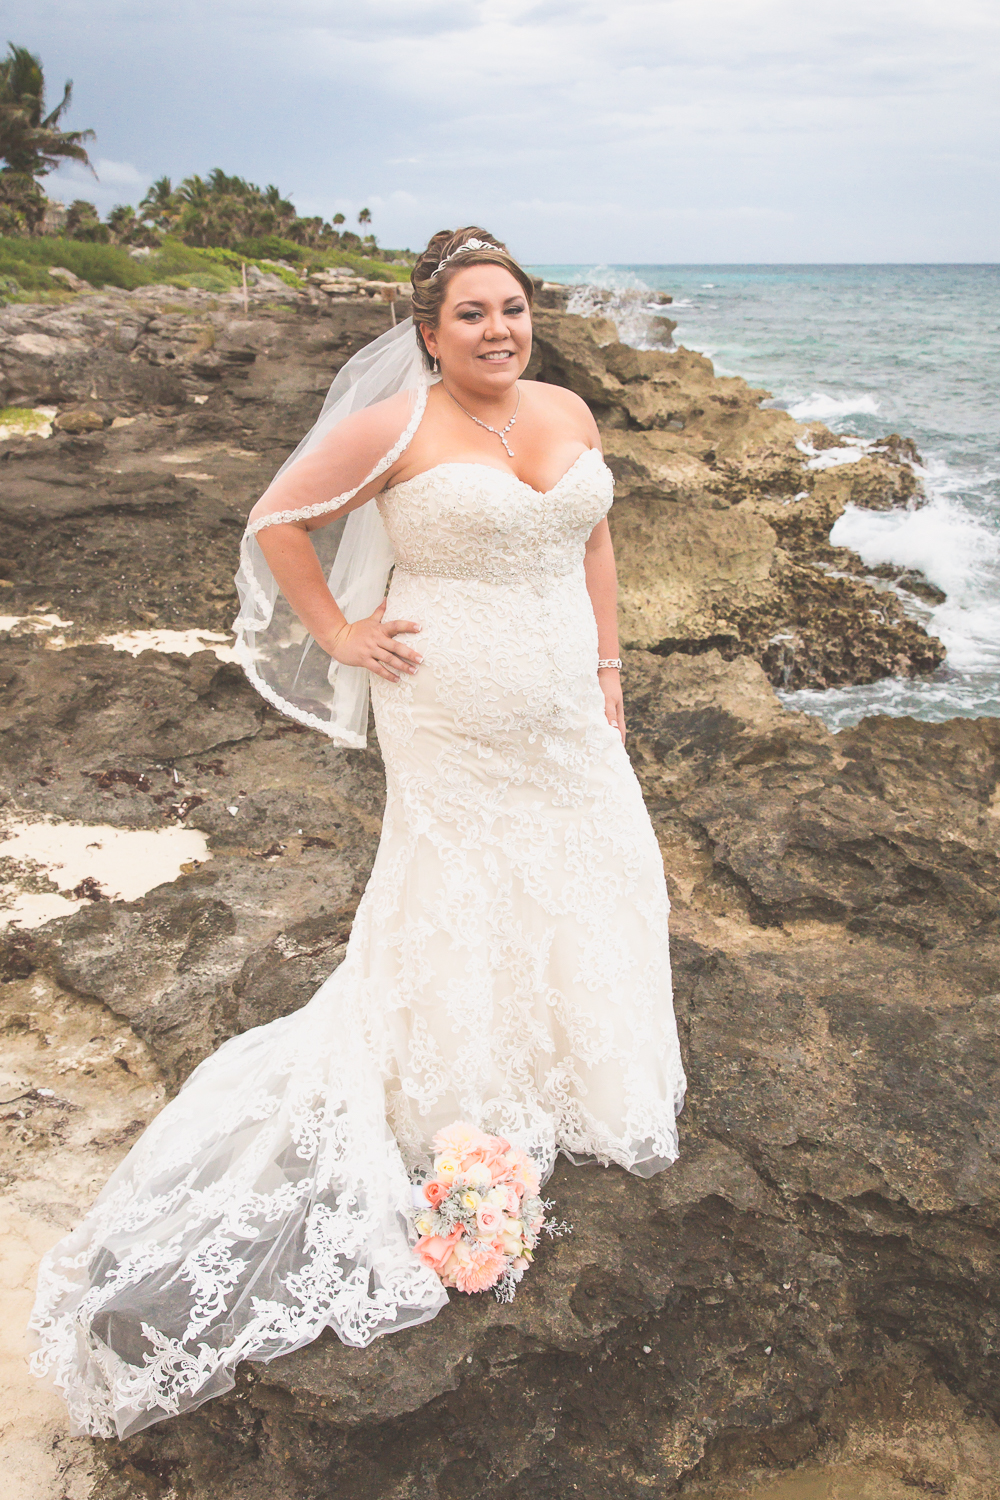 OCCIDENTAL GRAND XCARET RESORTOccidental Grand Xcaret Resort Bridal Shoot